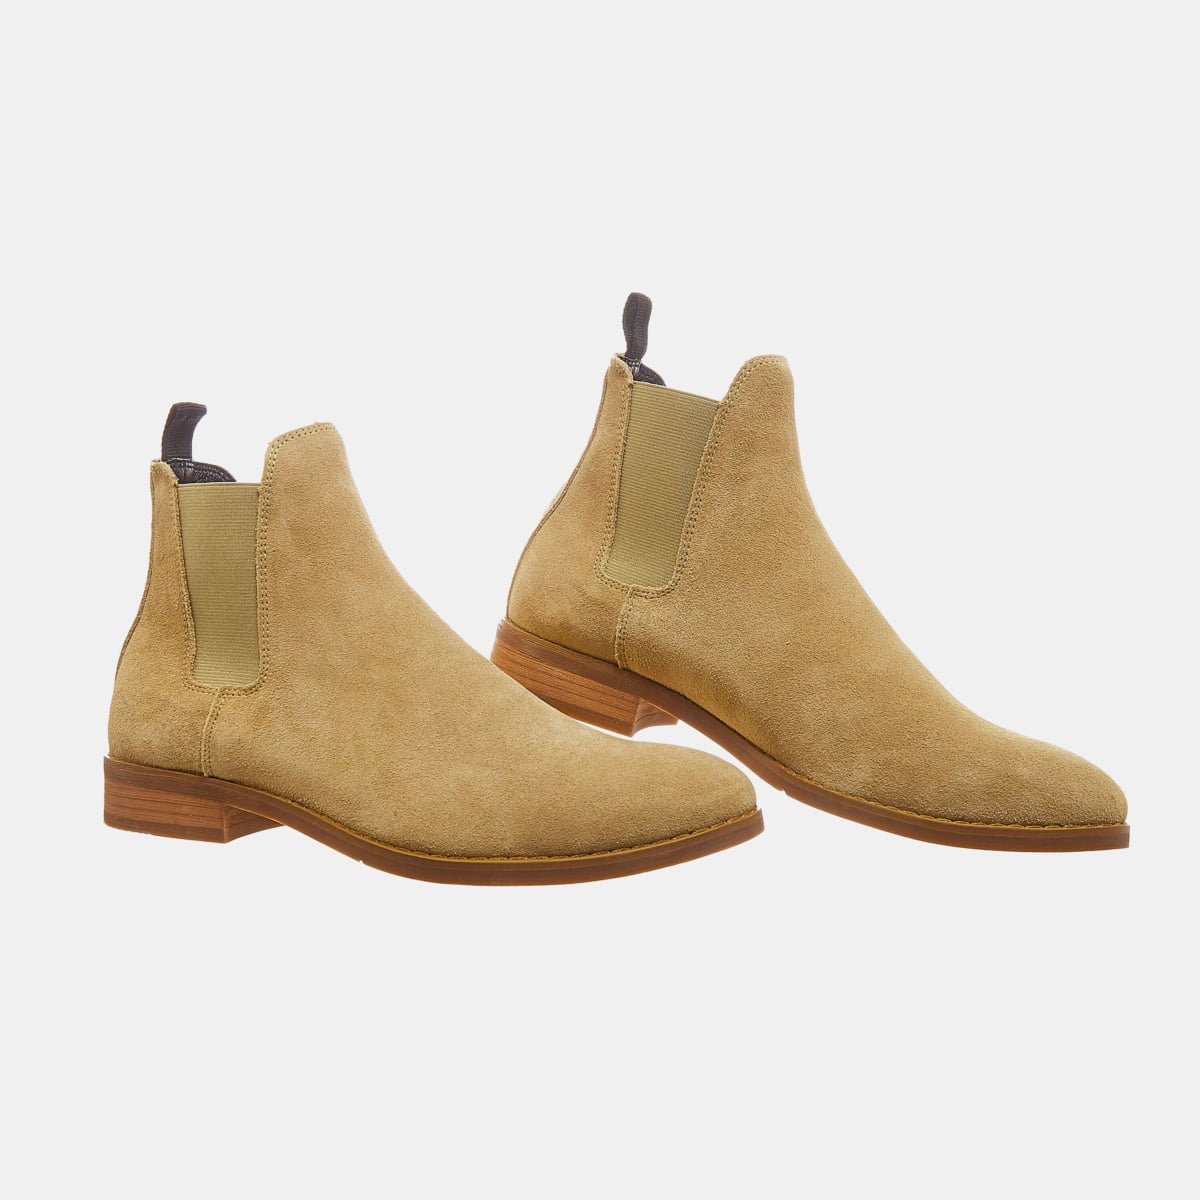 Suede Chelsea Boots In Tan Color Suede Chelsea Boots In Tan Color 2 1